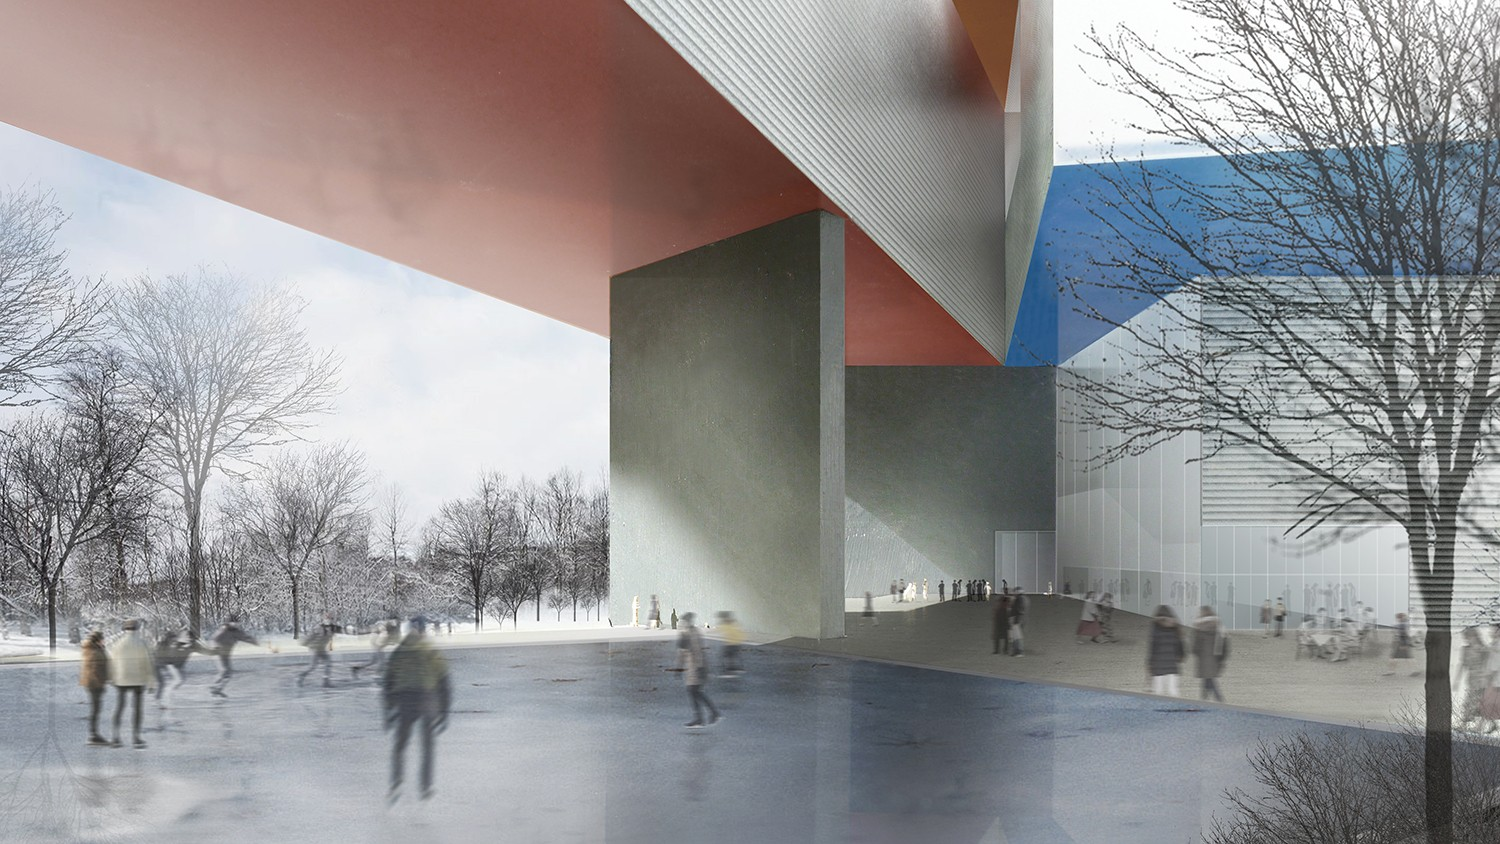 https://s3.us-east-2.amazonaws.com/steven-holl/uploads/projects/project-images/StevenHollArchitects_NCCA_View_snowypond_WH.jpg